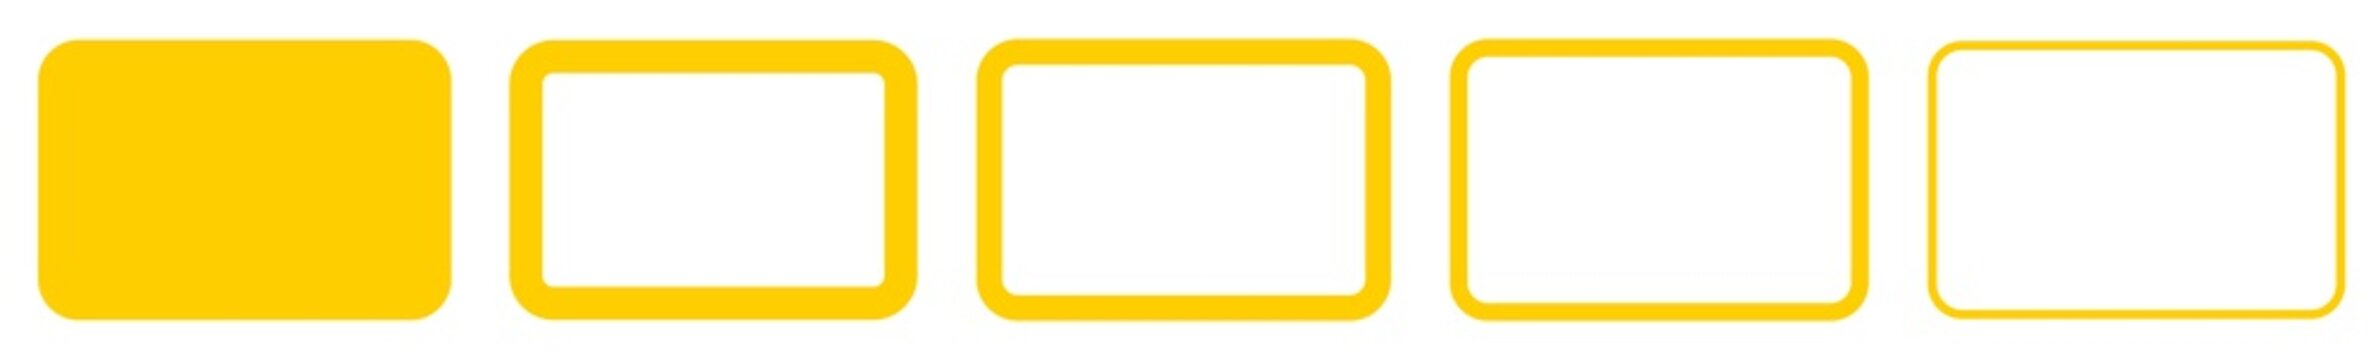 Rectangle Icon Yellow | Rounded Rectangles | Blank Box Symbol | Empty Frame Logo | Button Sign | Isolated | Variations